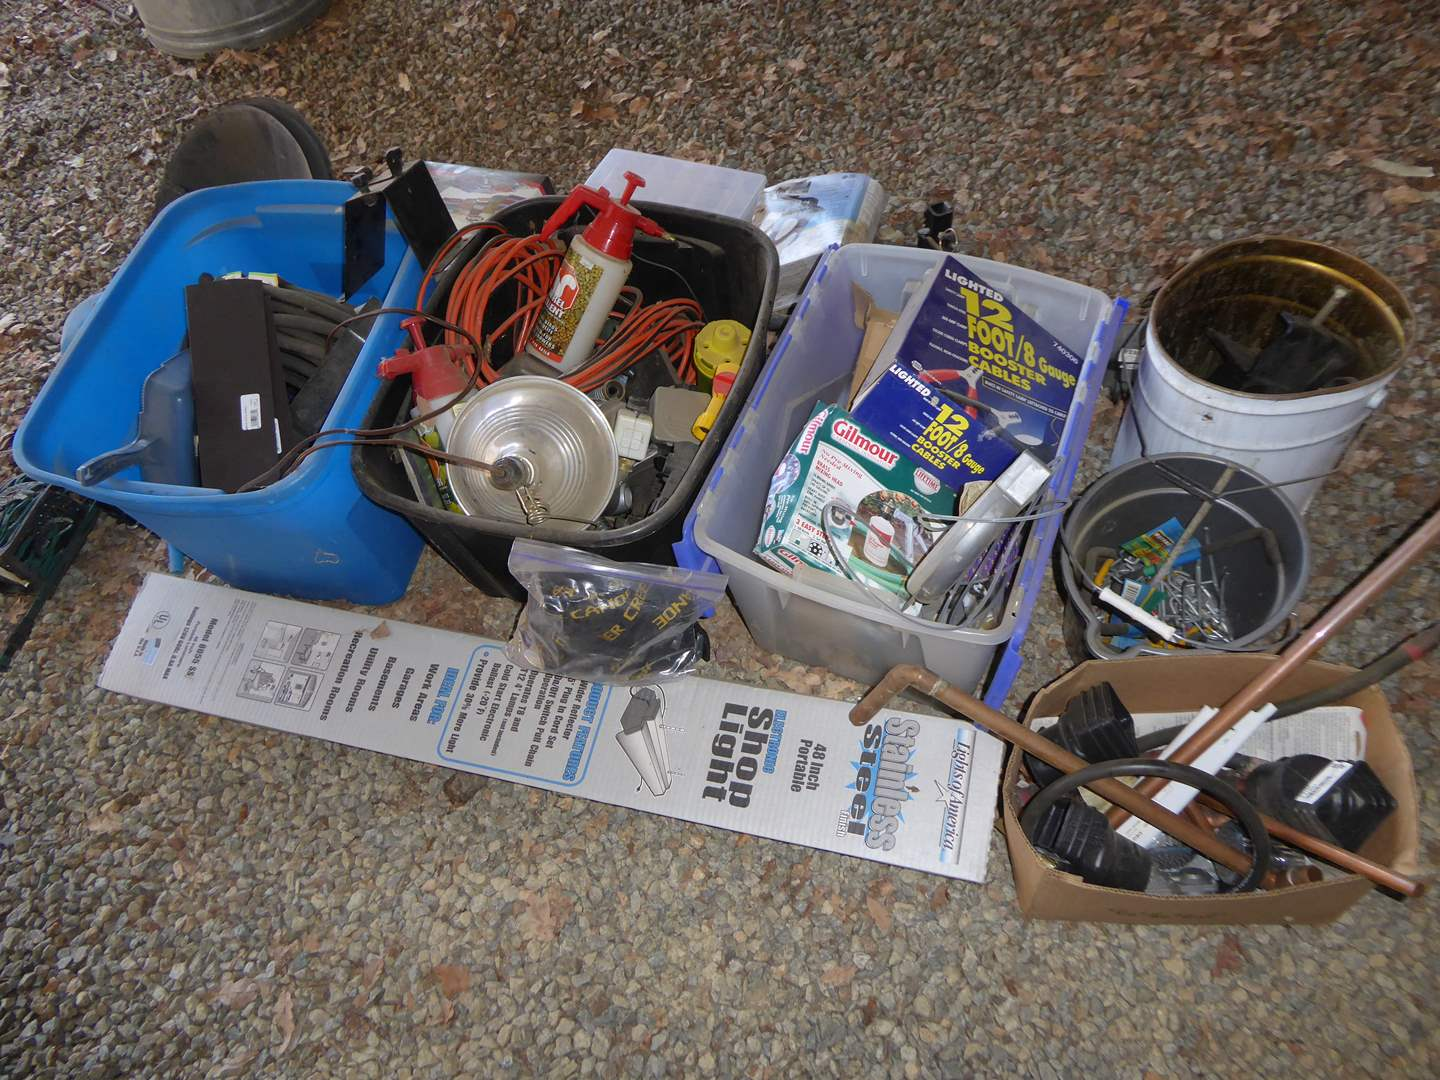 Lot # 8 - Miscellaneous Shop Lot - Stainless Steel Shop Light, Booster Cables, Bug Spray & More  (main image)